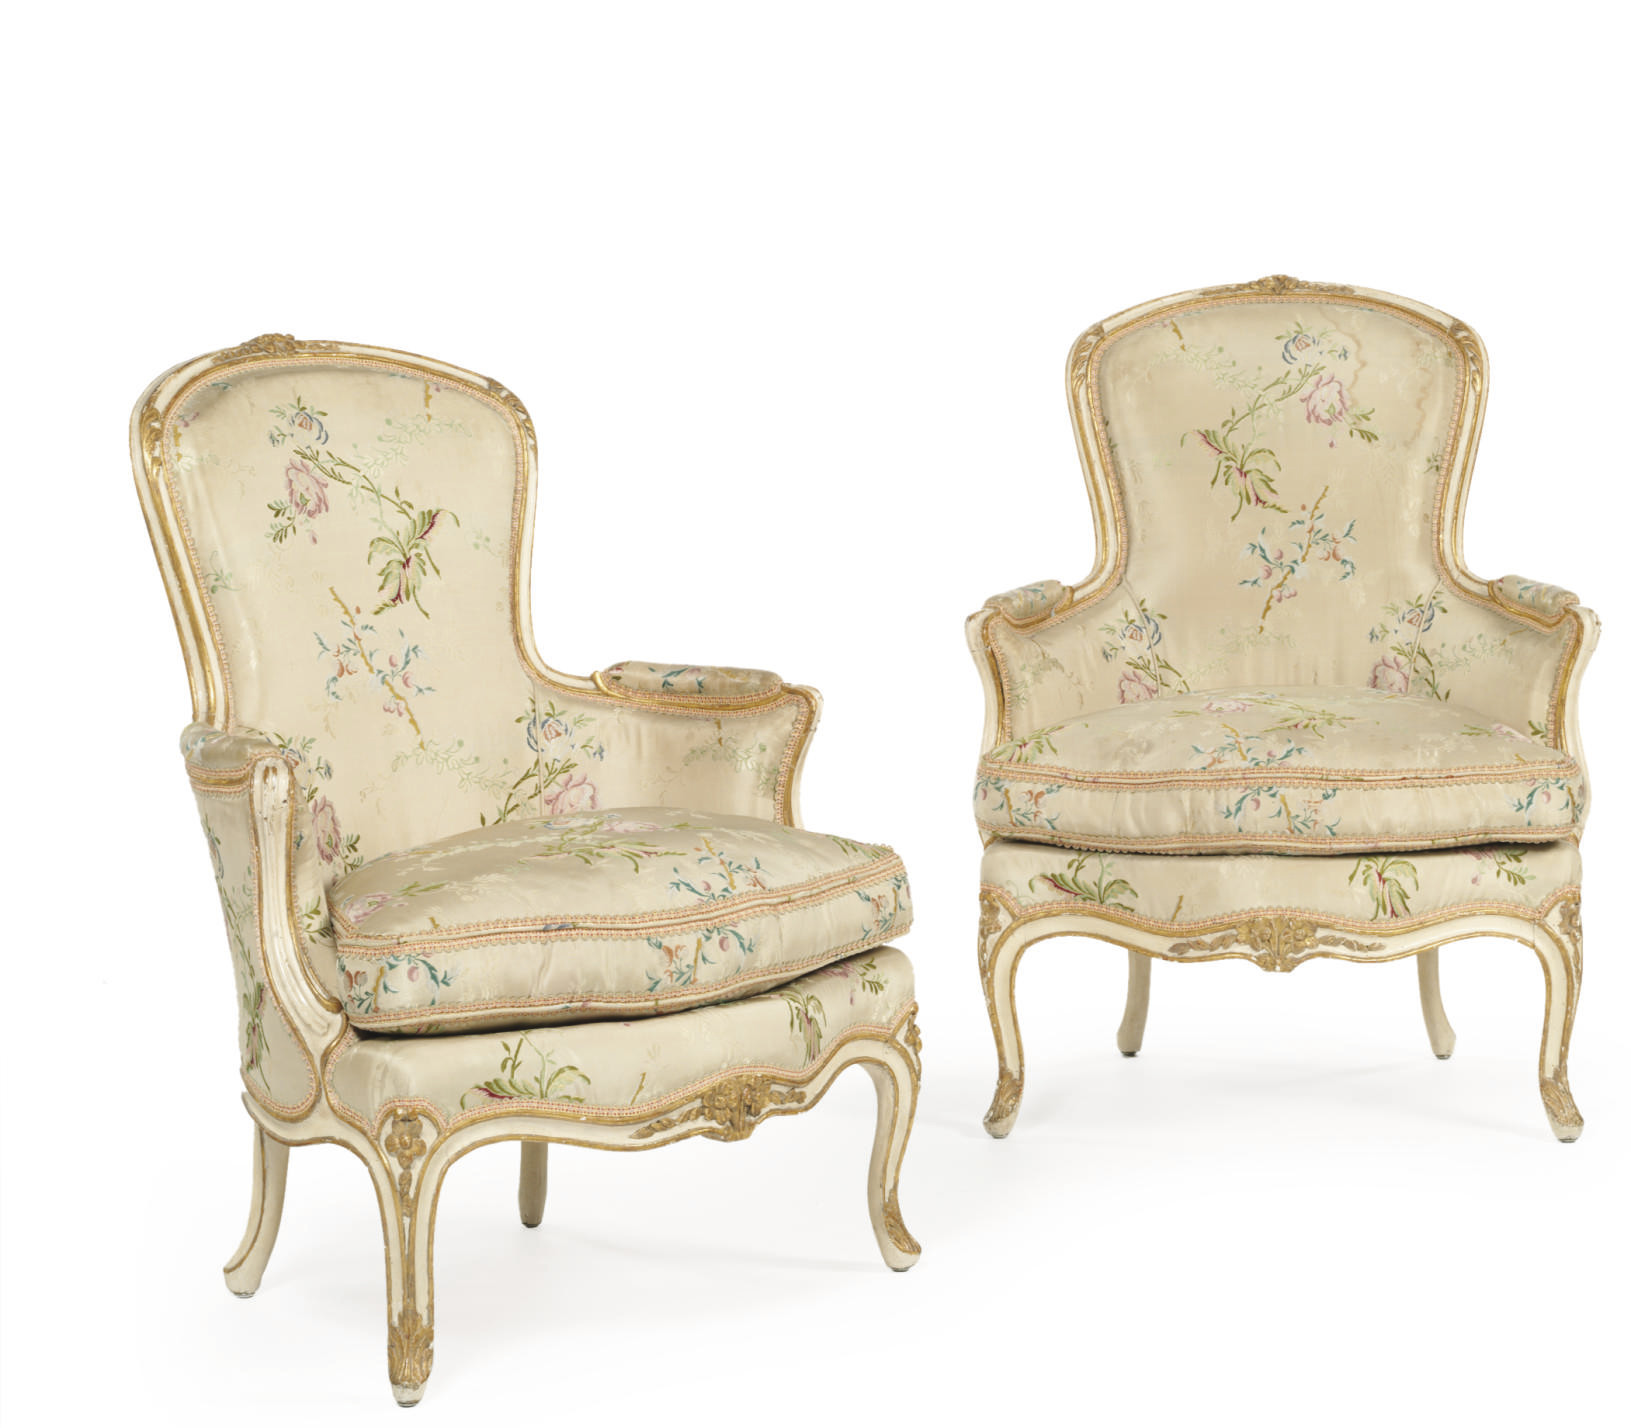 A PAIR OF LOUIS XV WHITE-PAINT